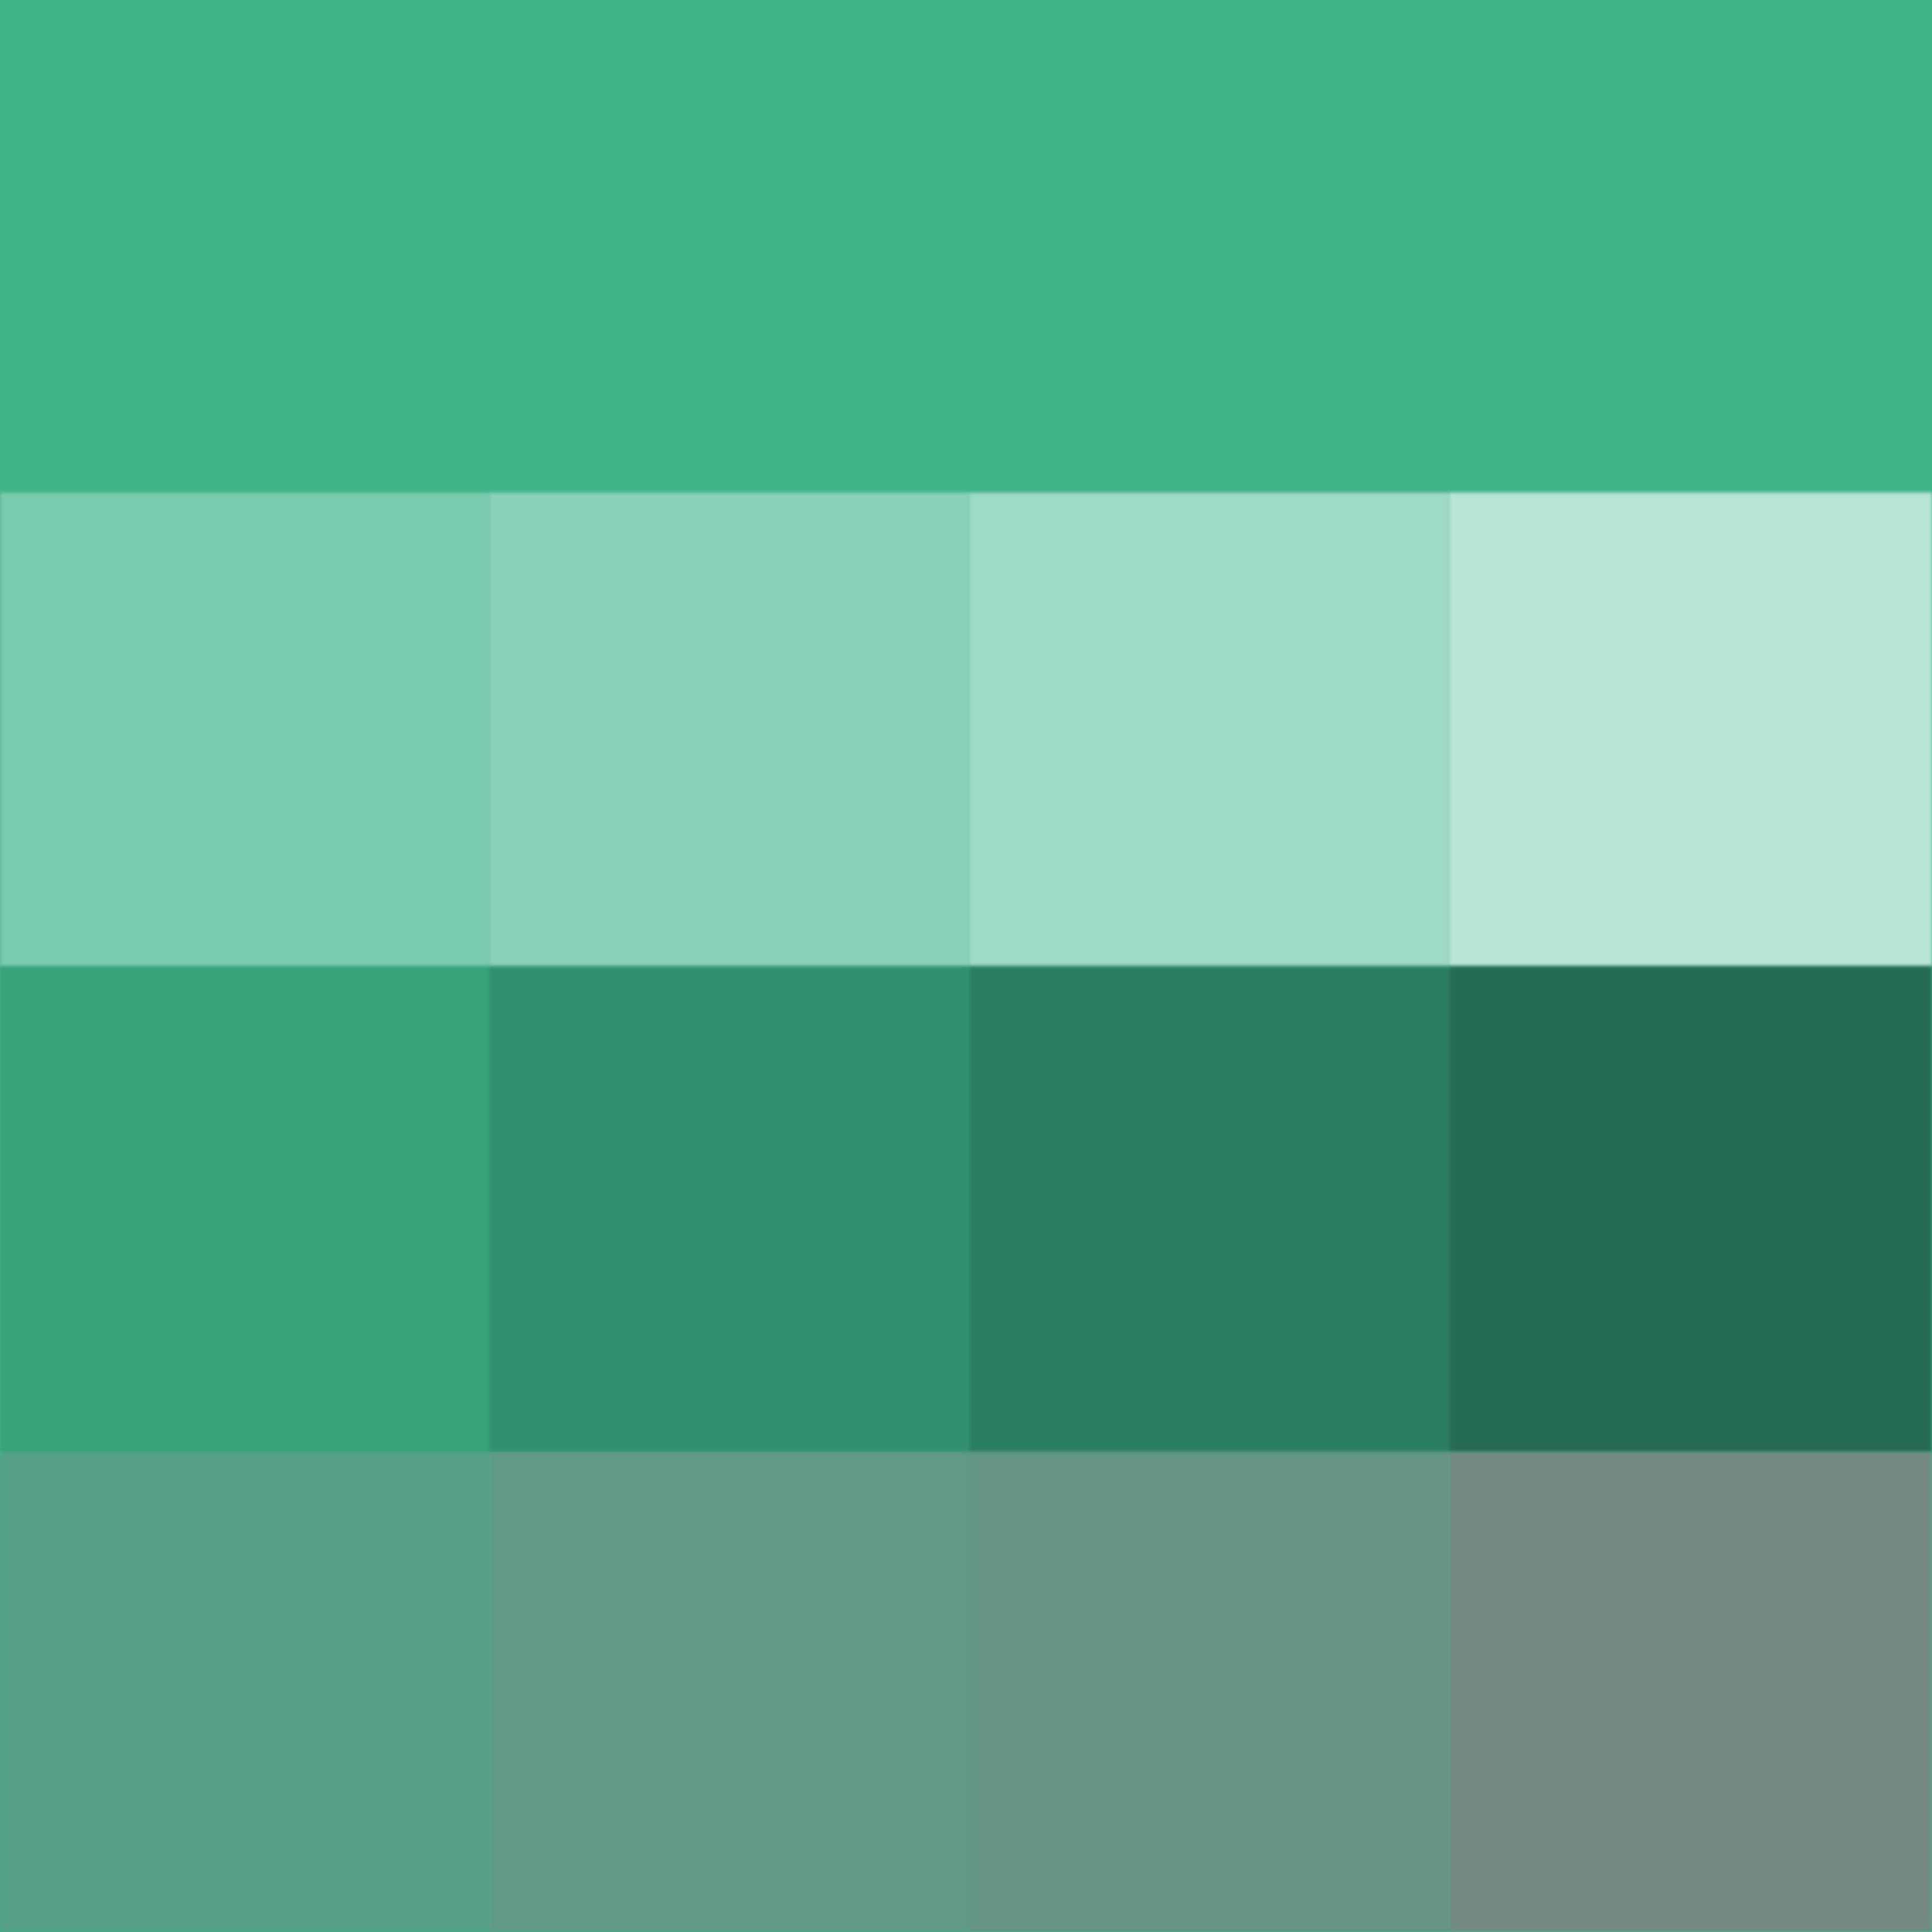 Mint Green Hue Pure Color With Tints Hue White Shades Hue Black And Tones Soft Summer Color Palette Summer Color Palettes Soft Summer Colors